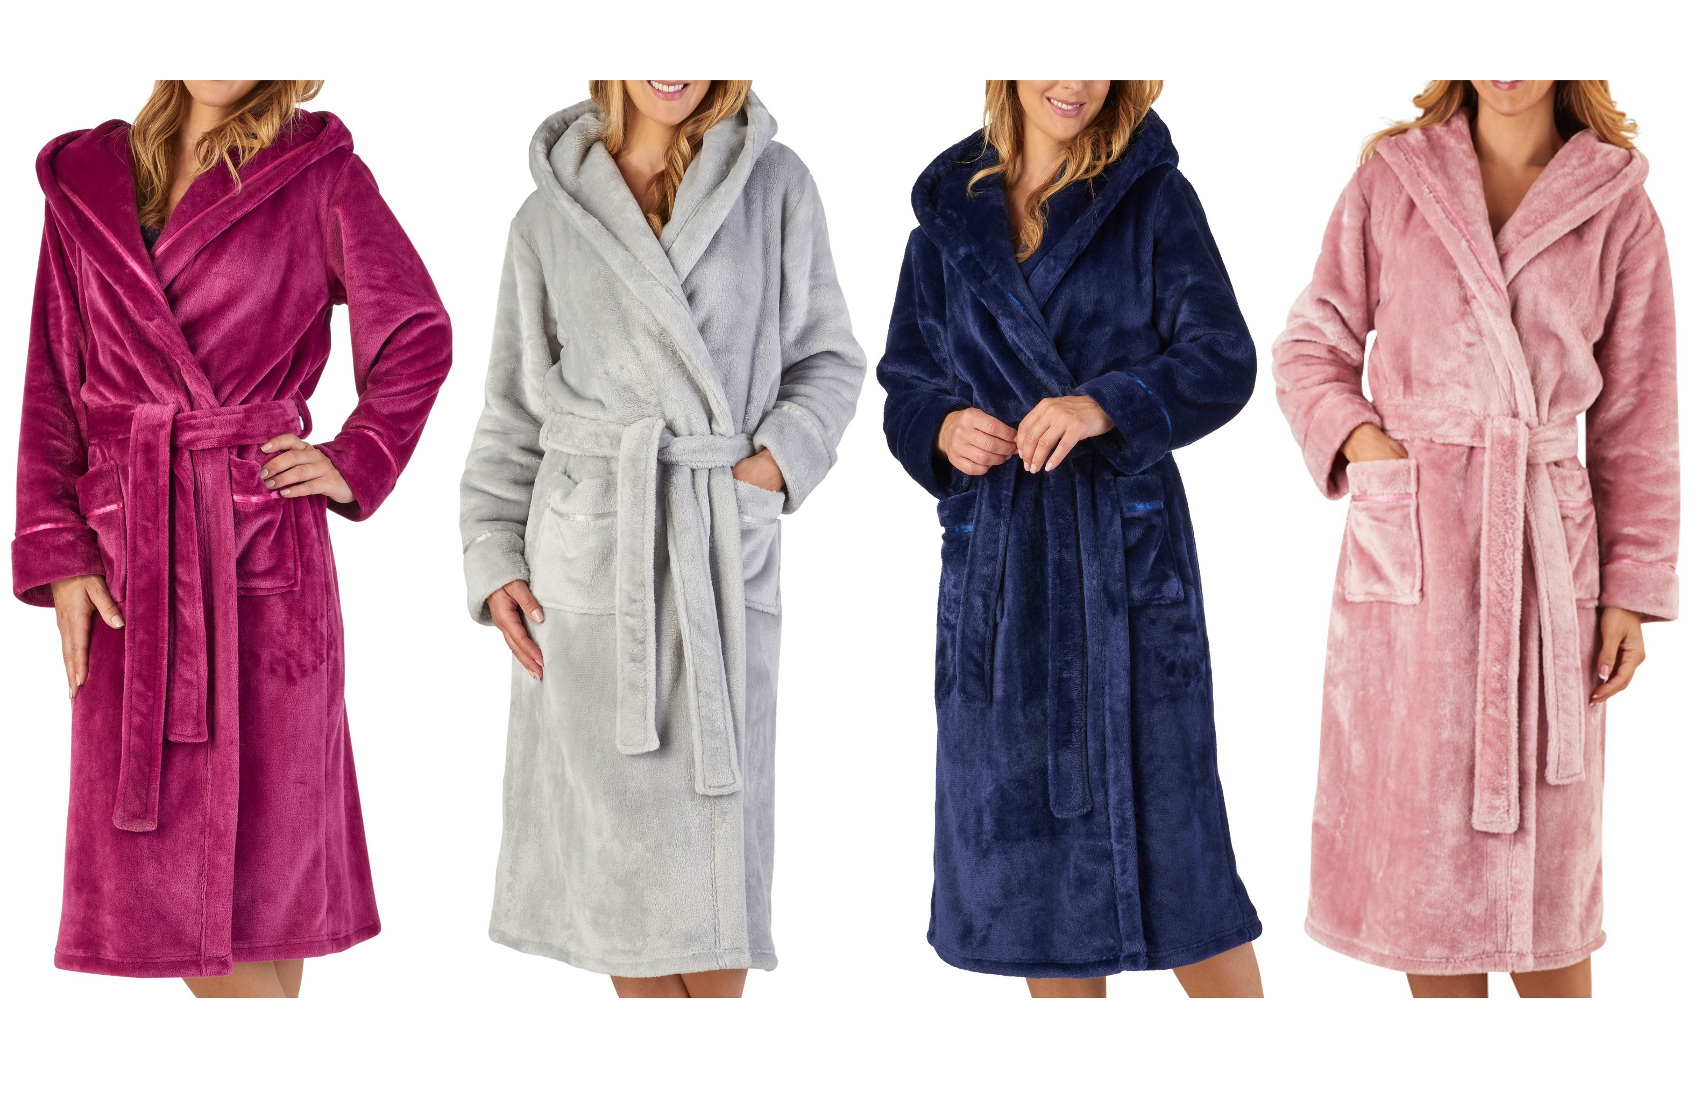 Details about Slenderella Womens Luxury Thick Flannel Fleece Dressing Gown  Hooded Bathrobe 85e90d947